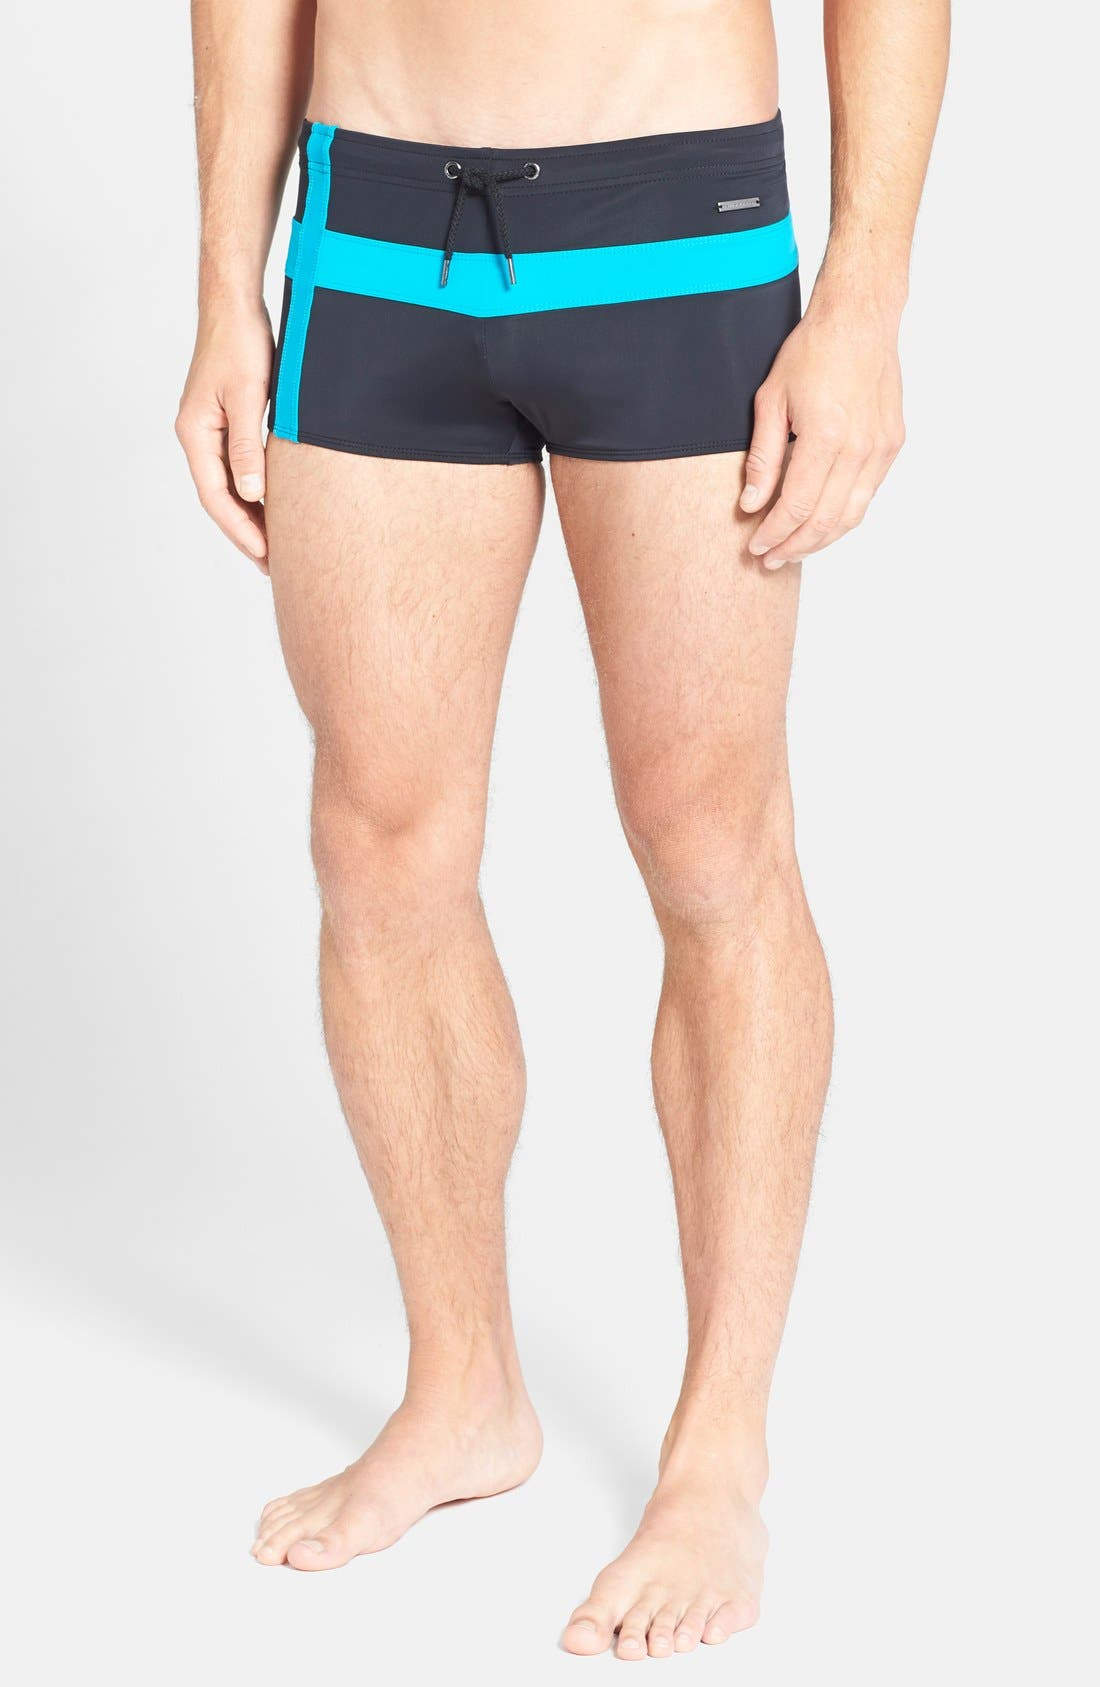 Main Image - Parke & Ronen 'Ibiza Cross' Square Cut Swim Briefs